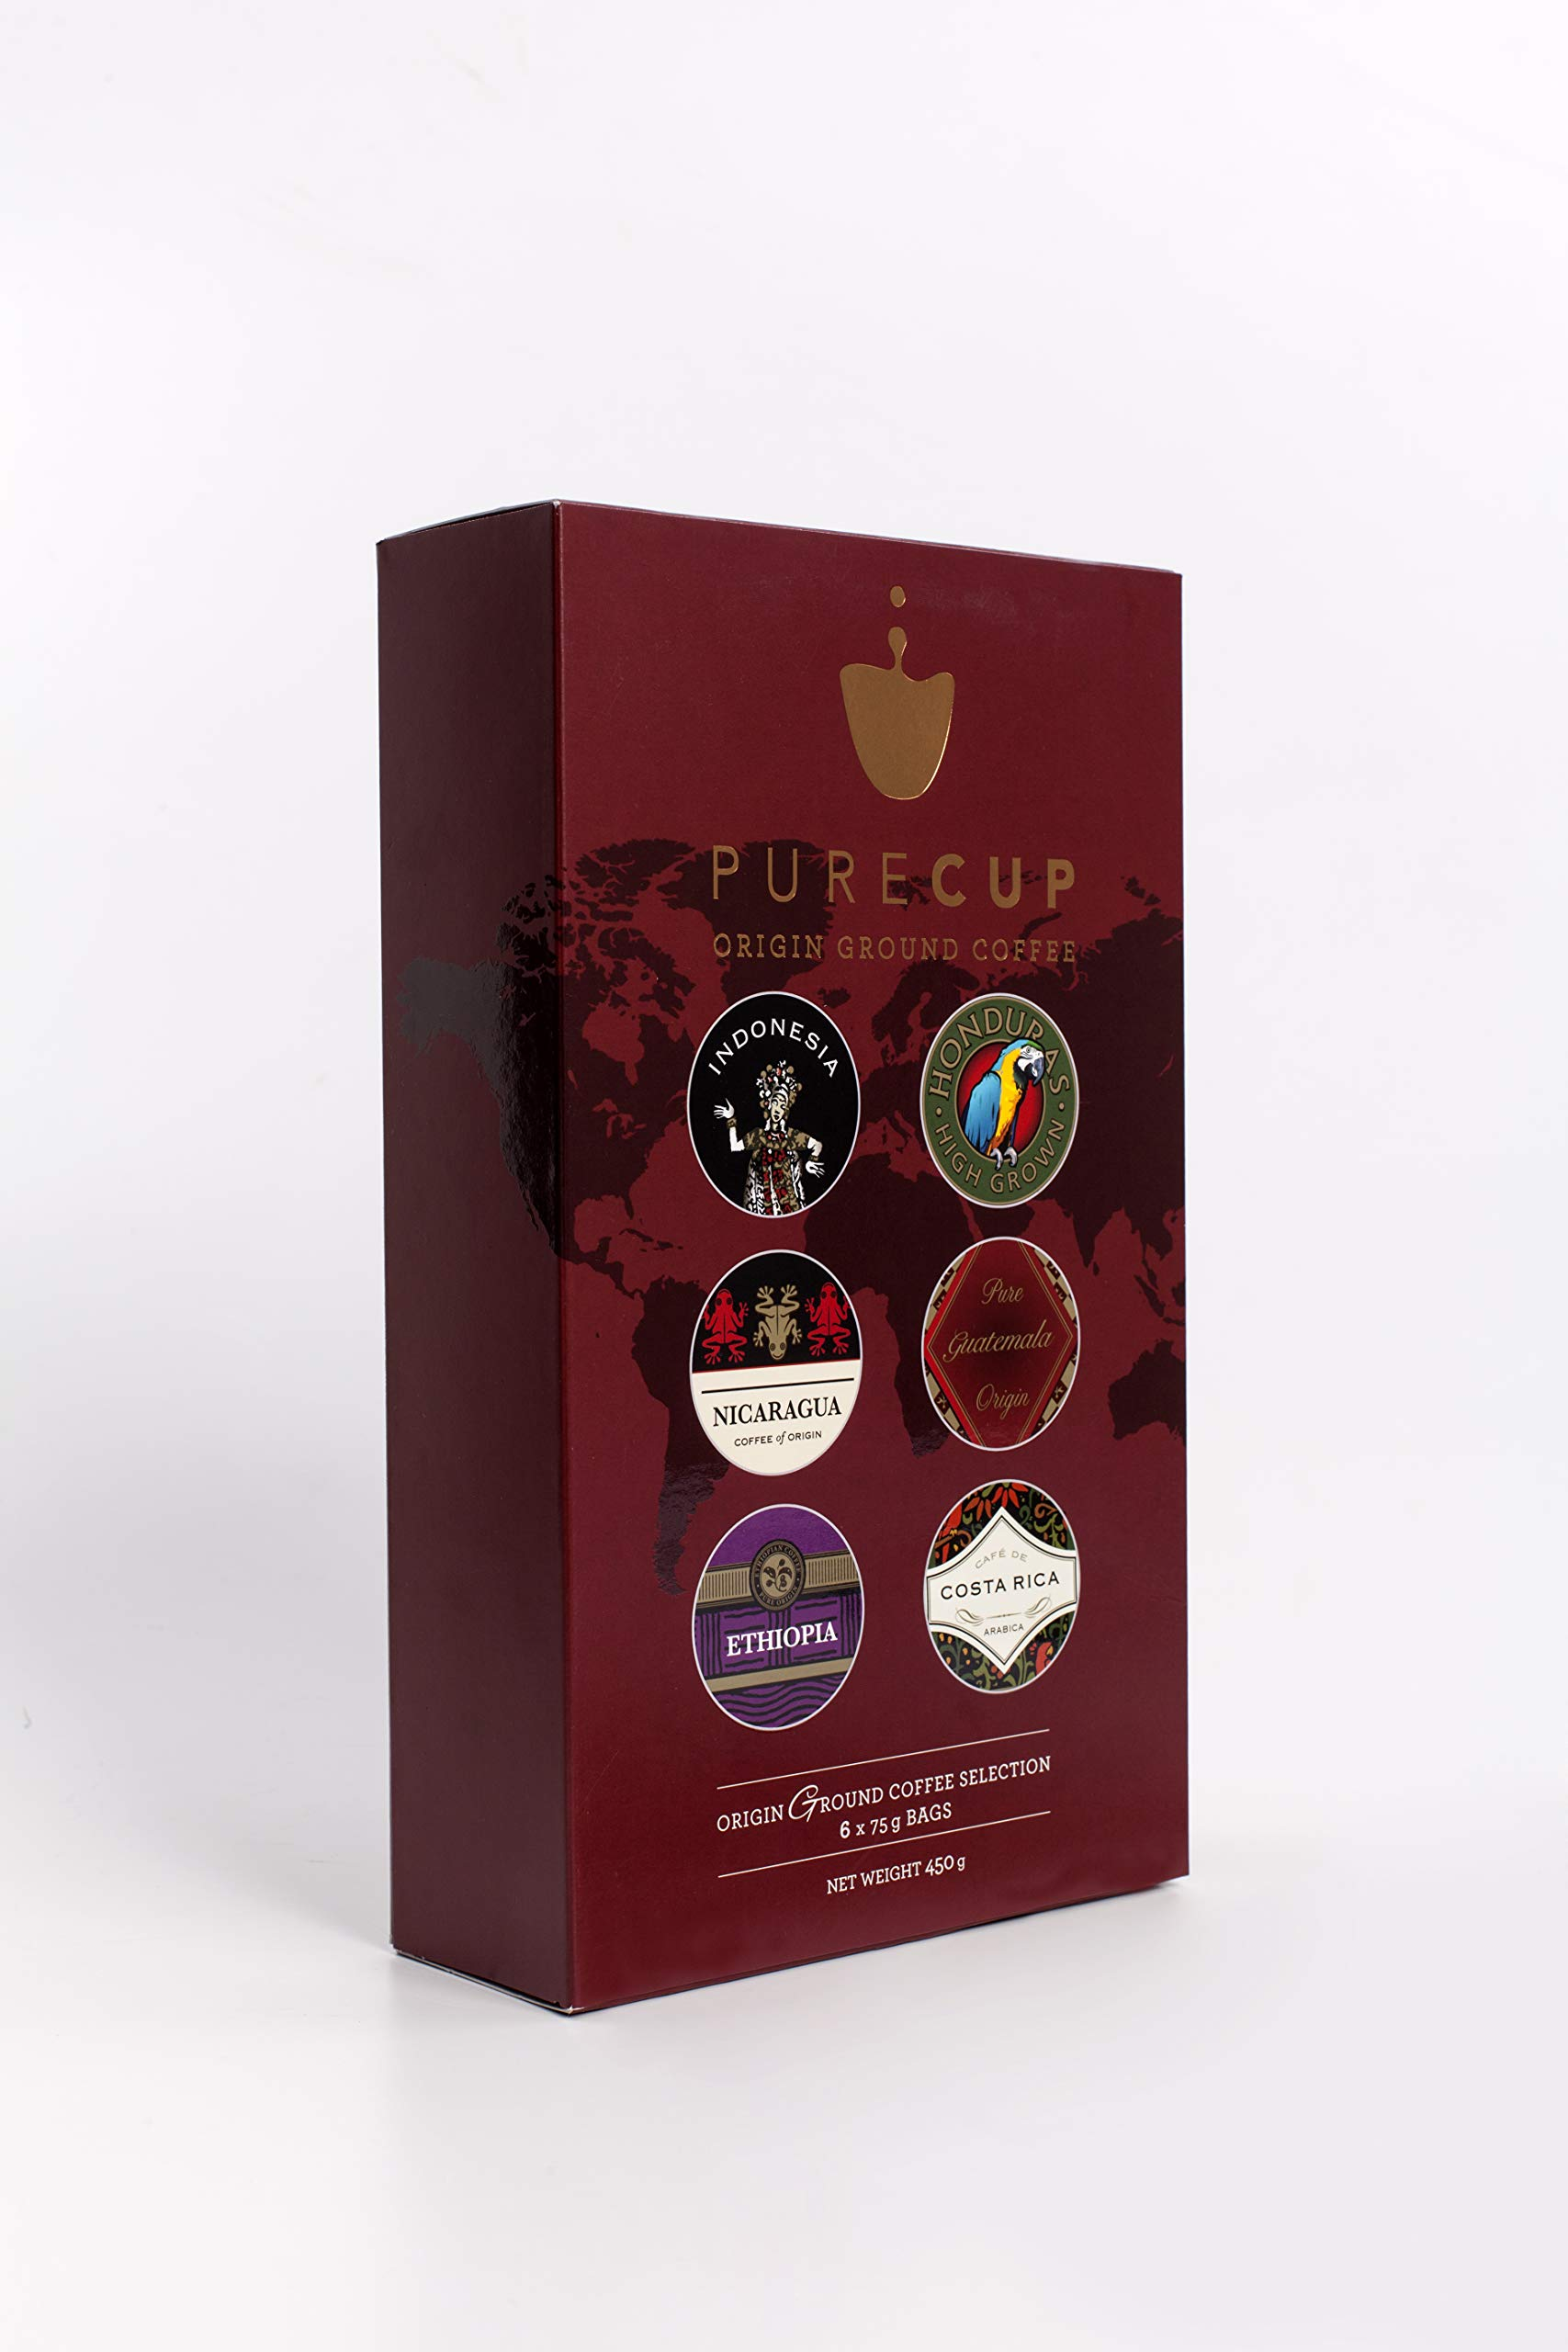 PureCup – Origin Ground Coffee Gift Set – 6 Origins | 75g Each